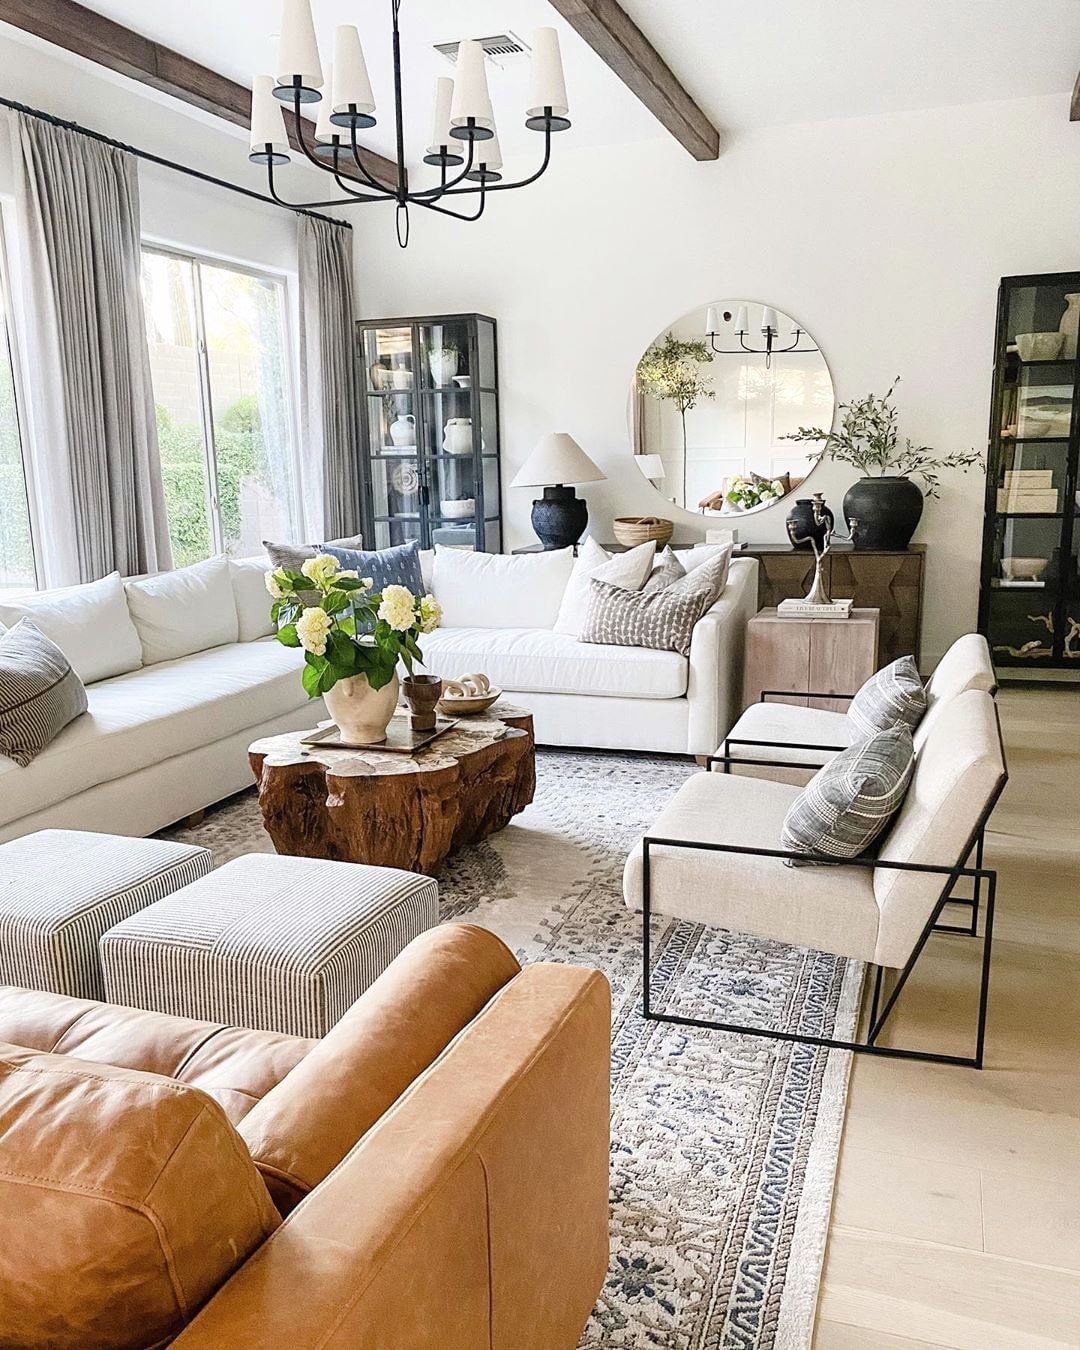 17 Best Home Decor Ideas For Living Room On A Budget Living Room Designs Arhaus Living Room Living Room On A Budget Living rooms ideas and inspiration